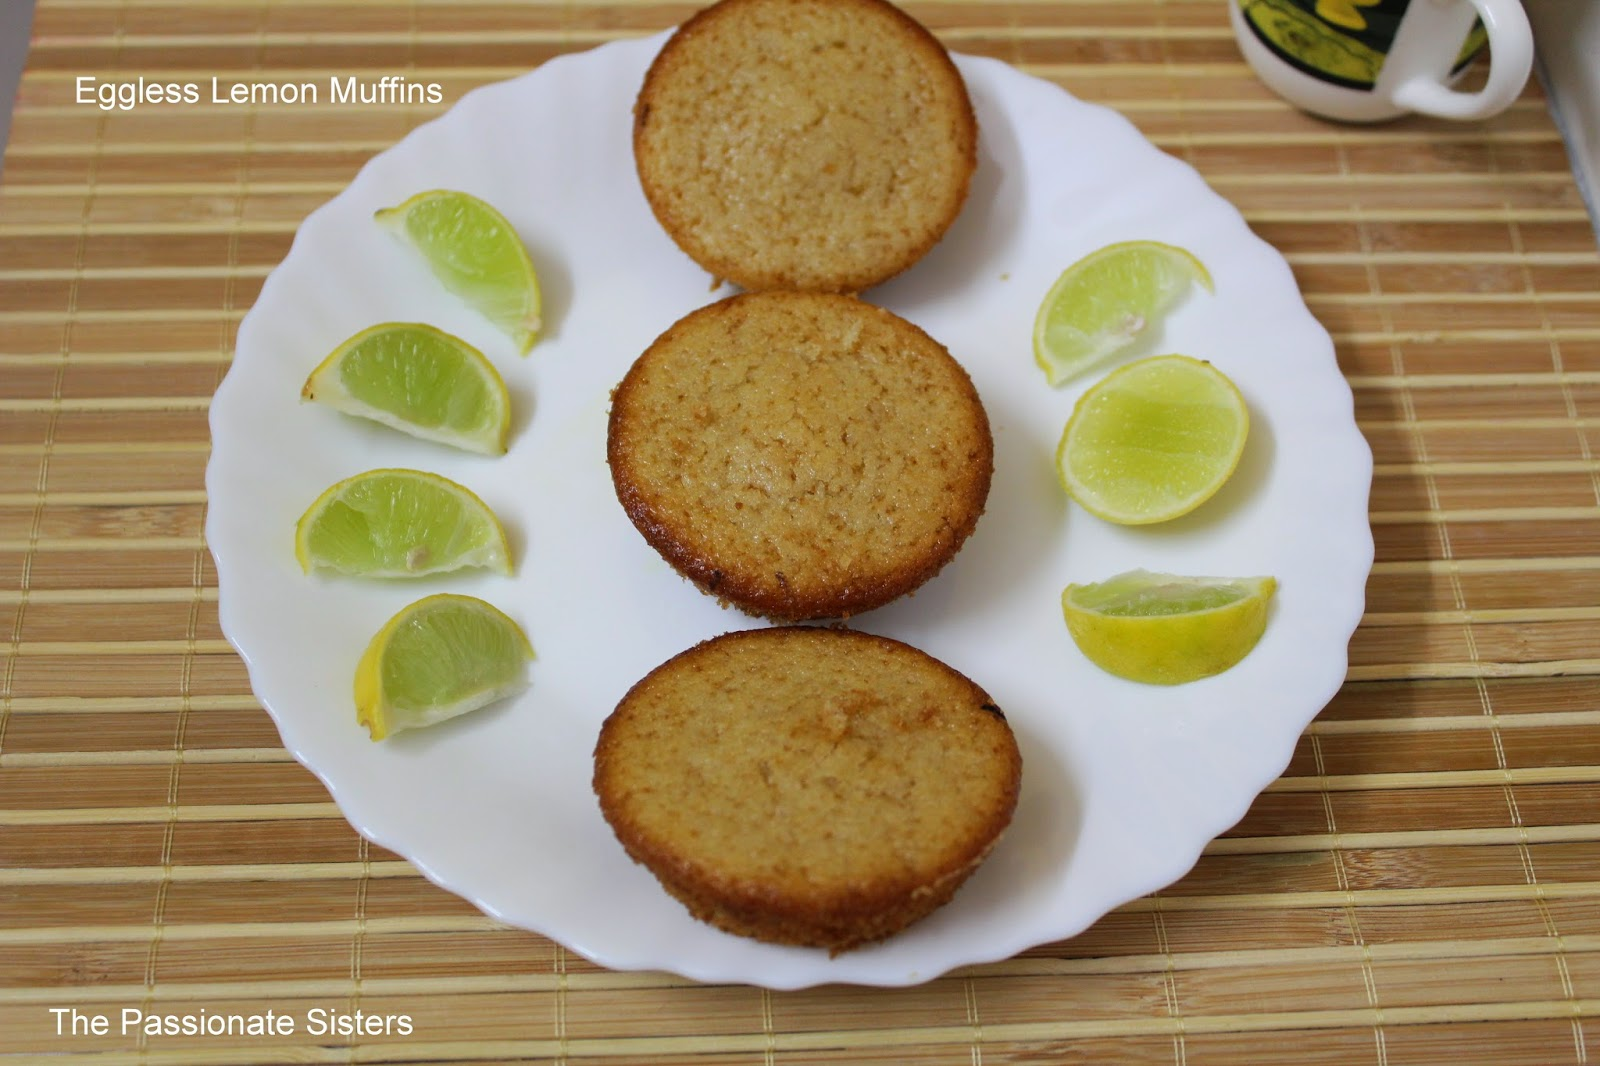 Eggless whole wheat lemon muffins